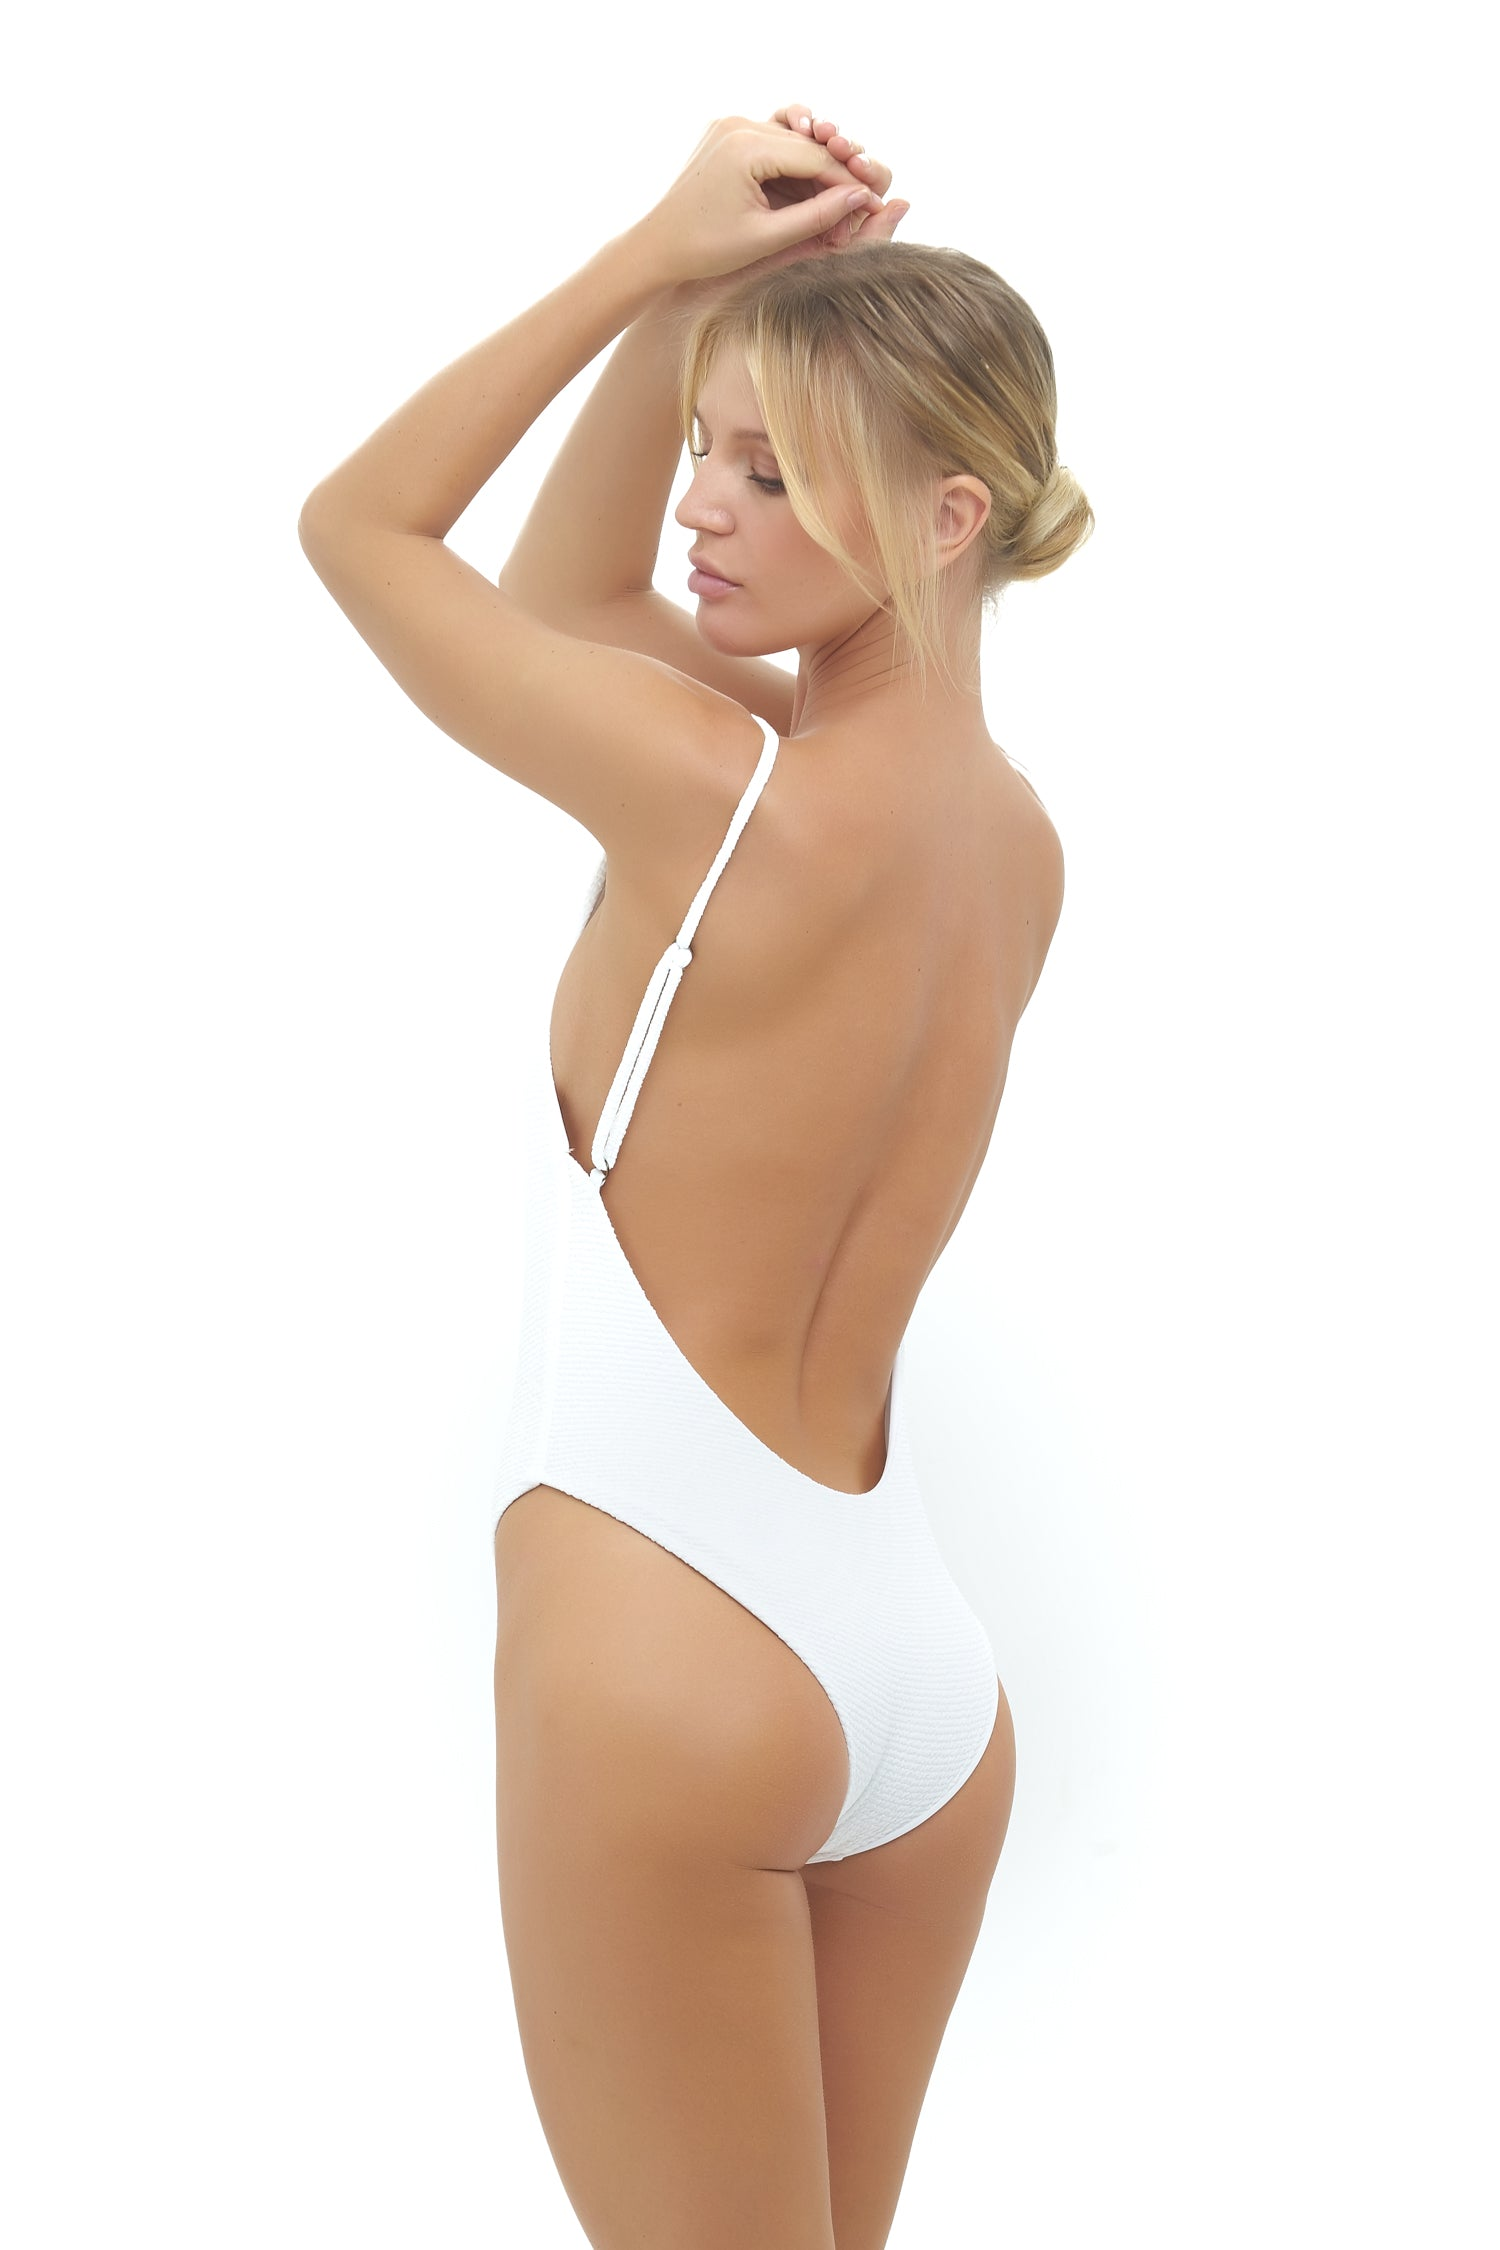 Storm Swimwear - Byron Bay - One Piece Swimsuit in Storm Le Nuage Blanc